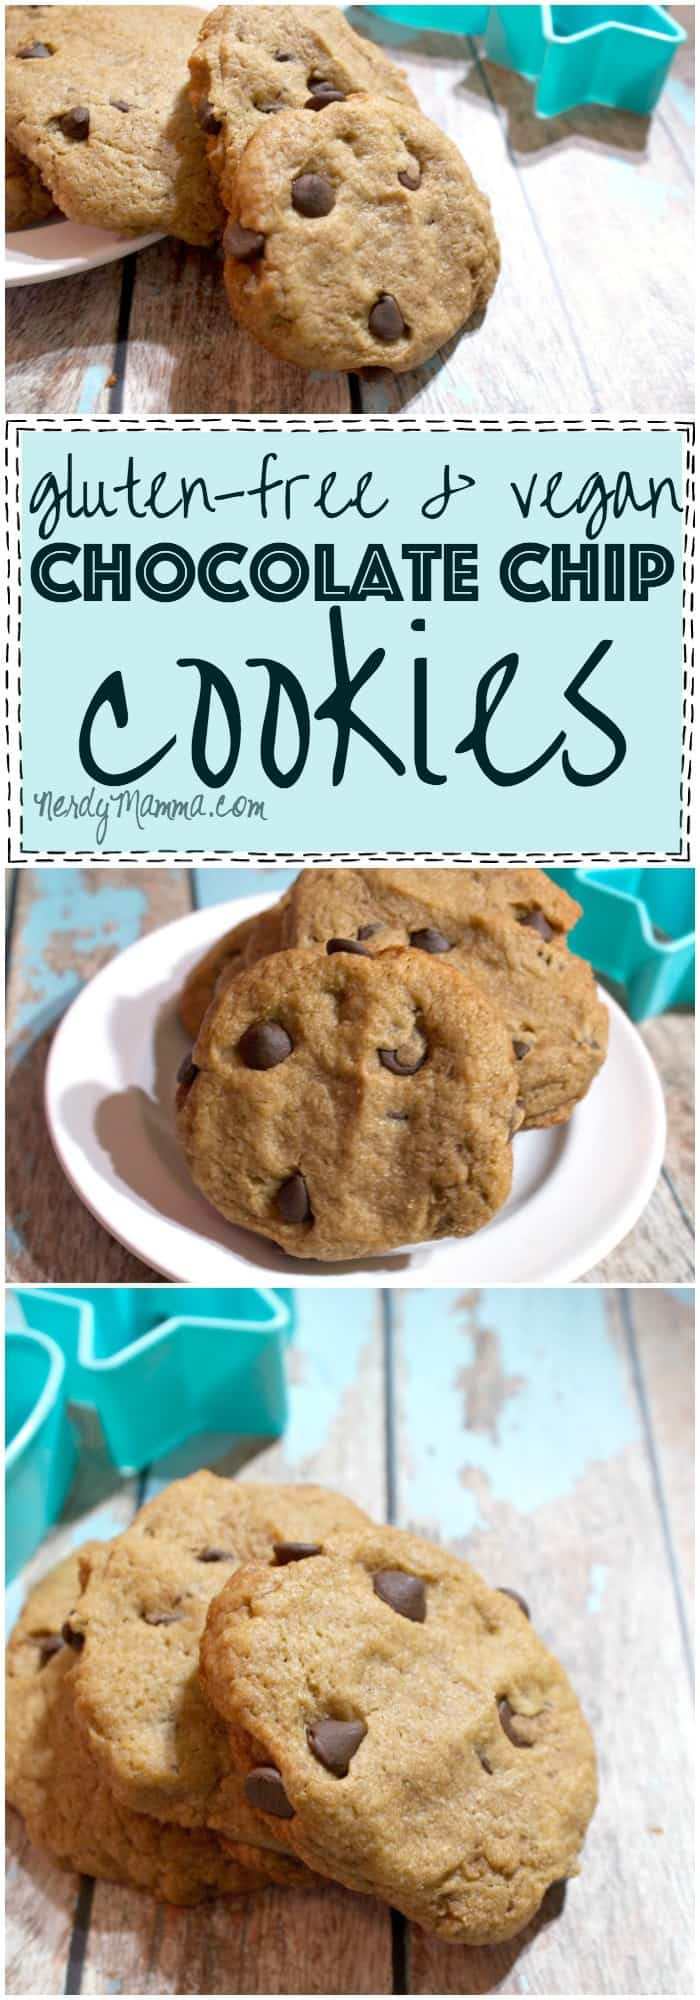 This recipe for vegan and gluten-free chocolate chip cookies is so EASY. I had no idea cooking gluten-free you could still have yummy things like cookies. This is so awesome.